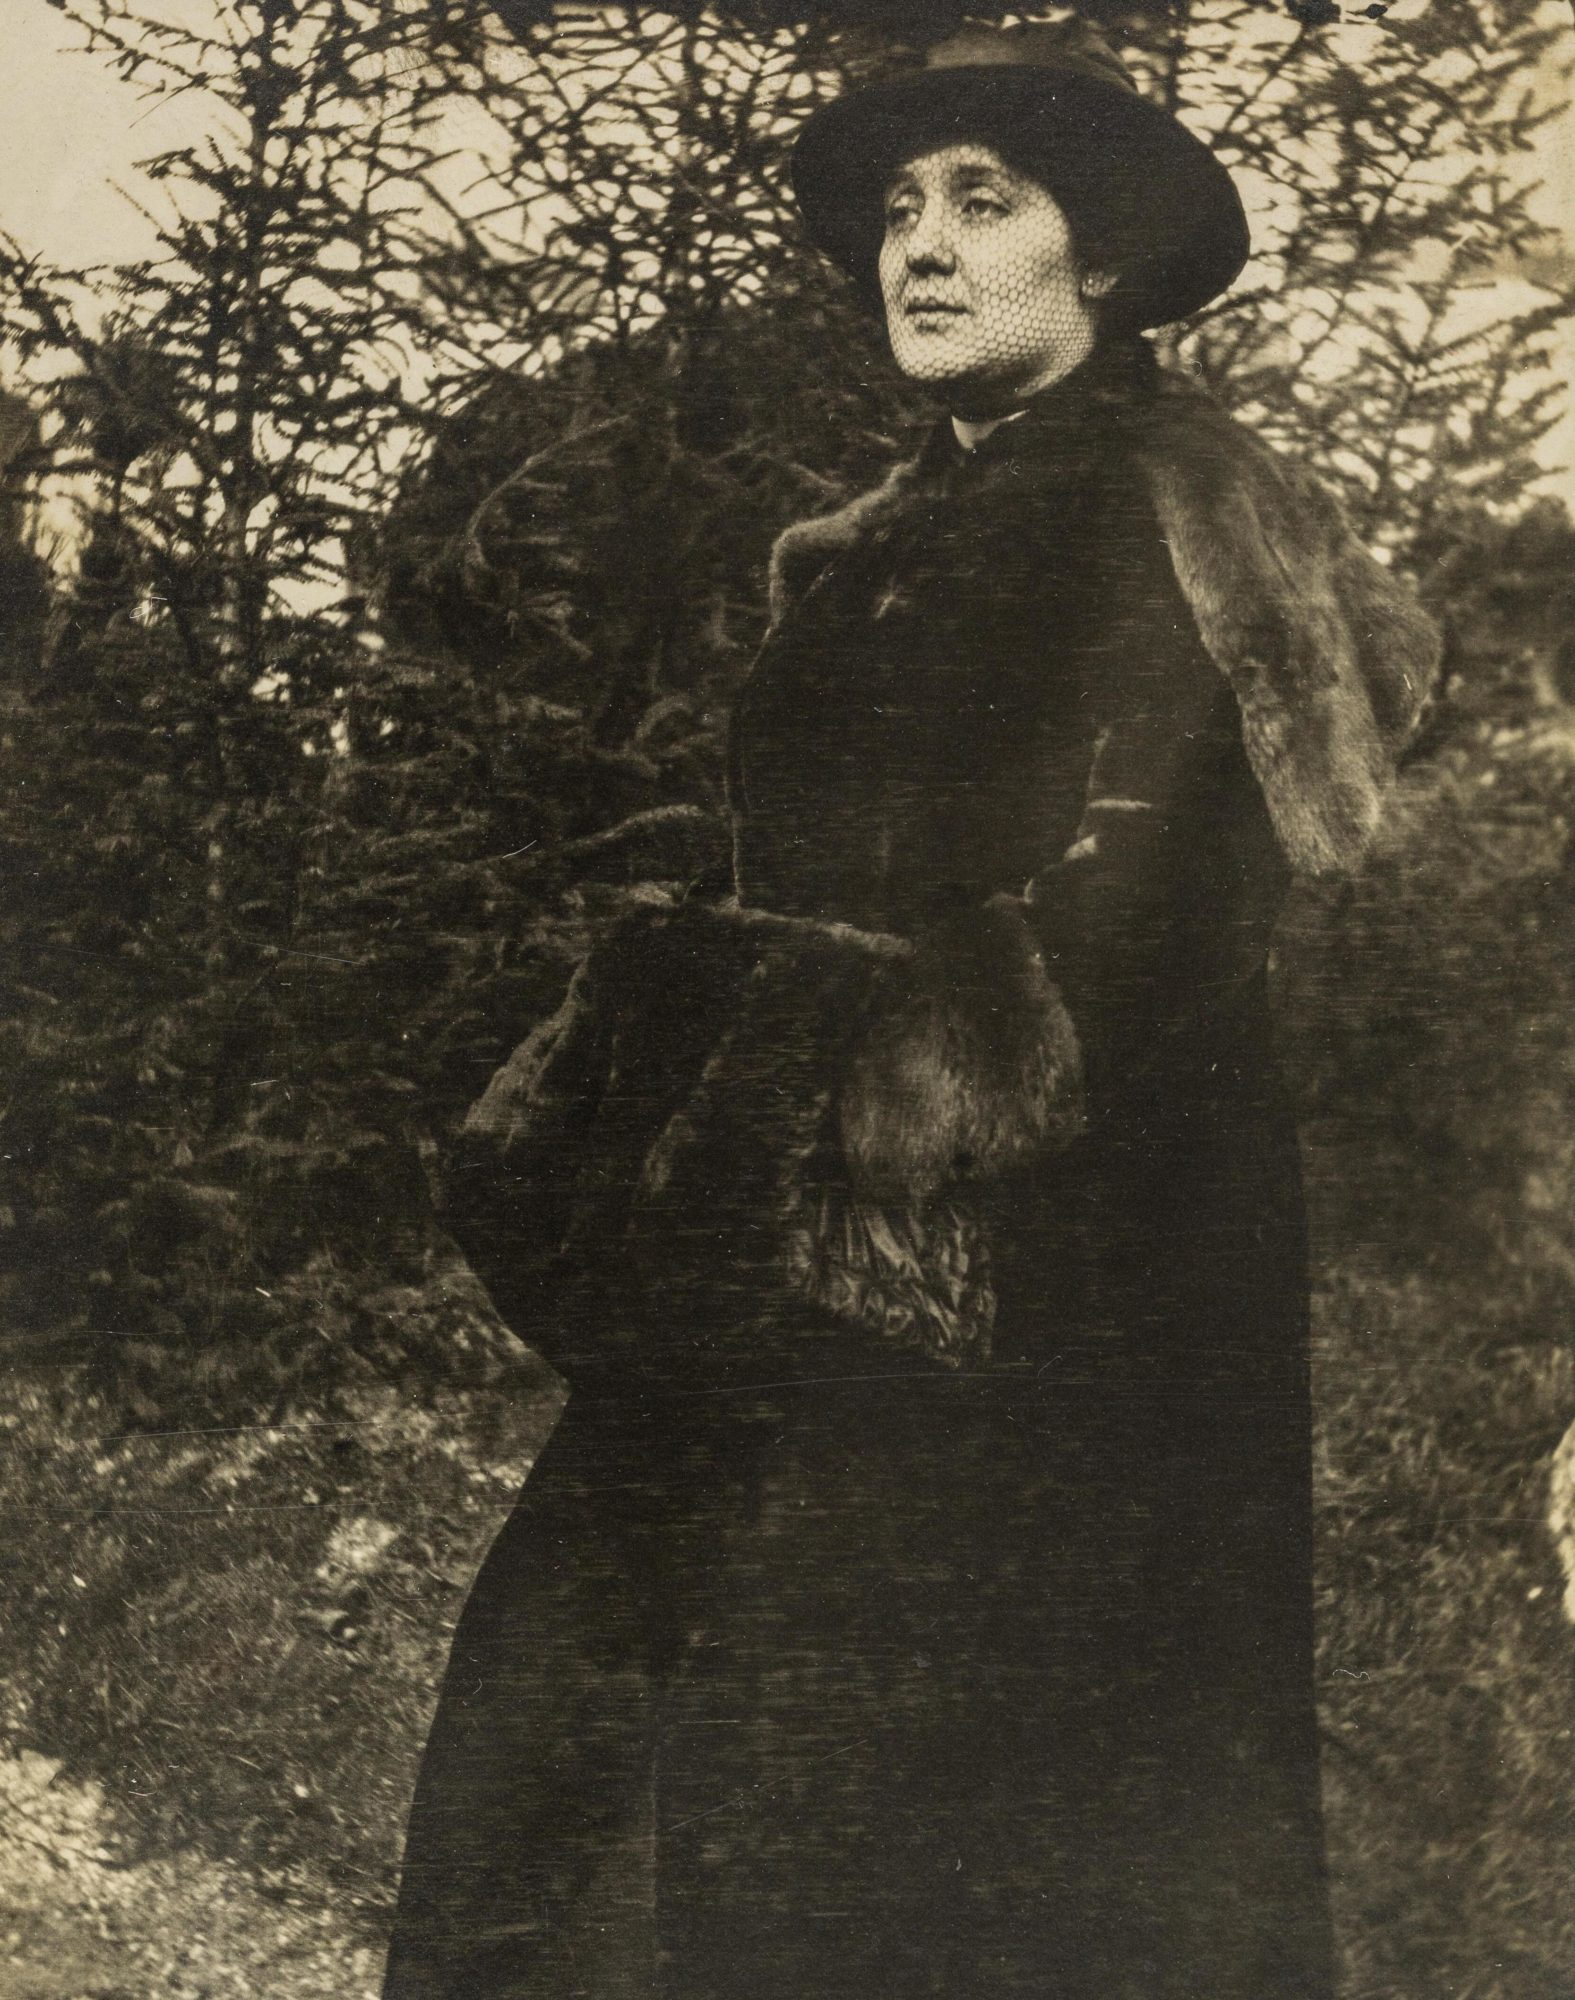 Photograph of Melanie Klein in 1909